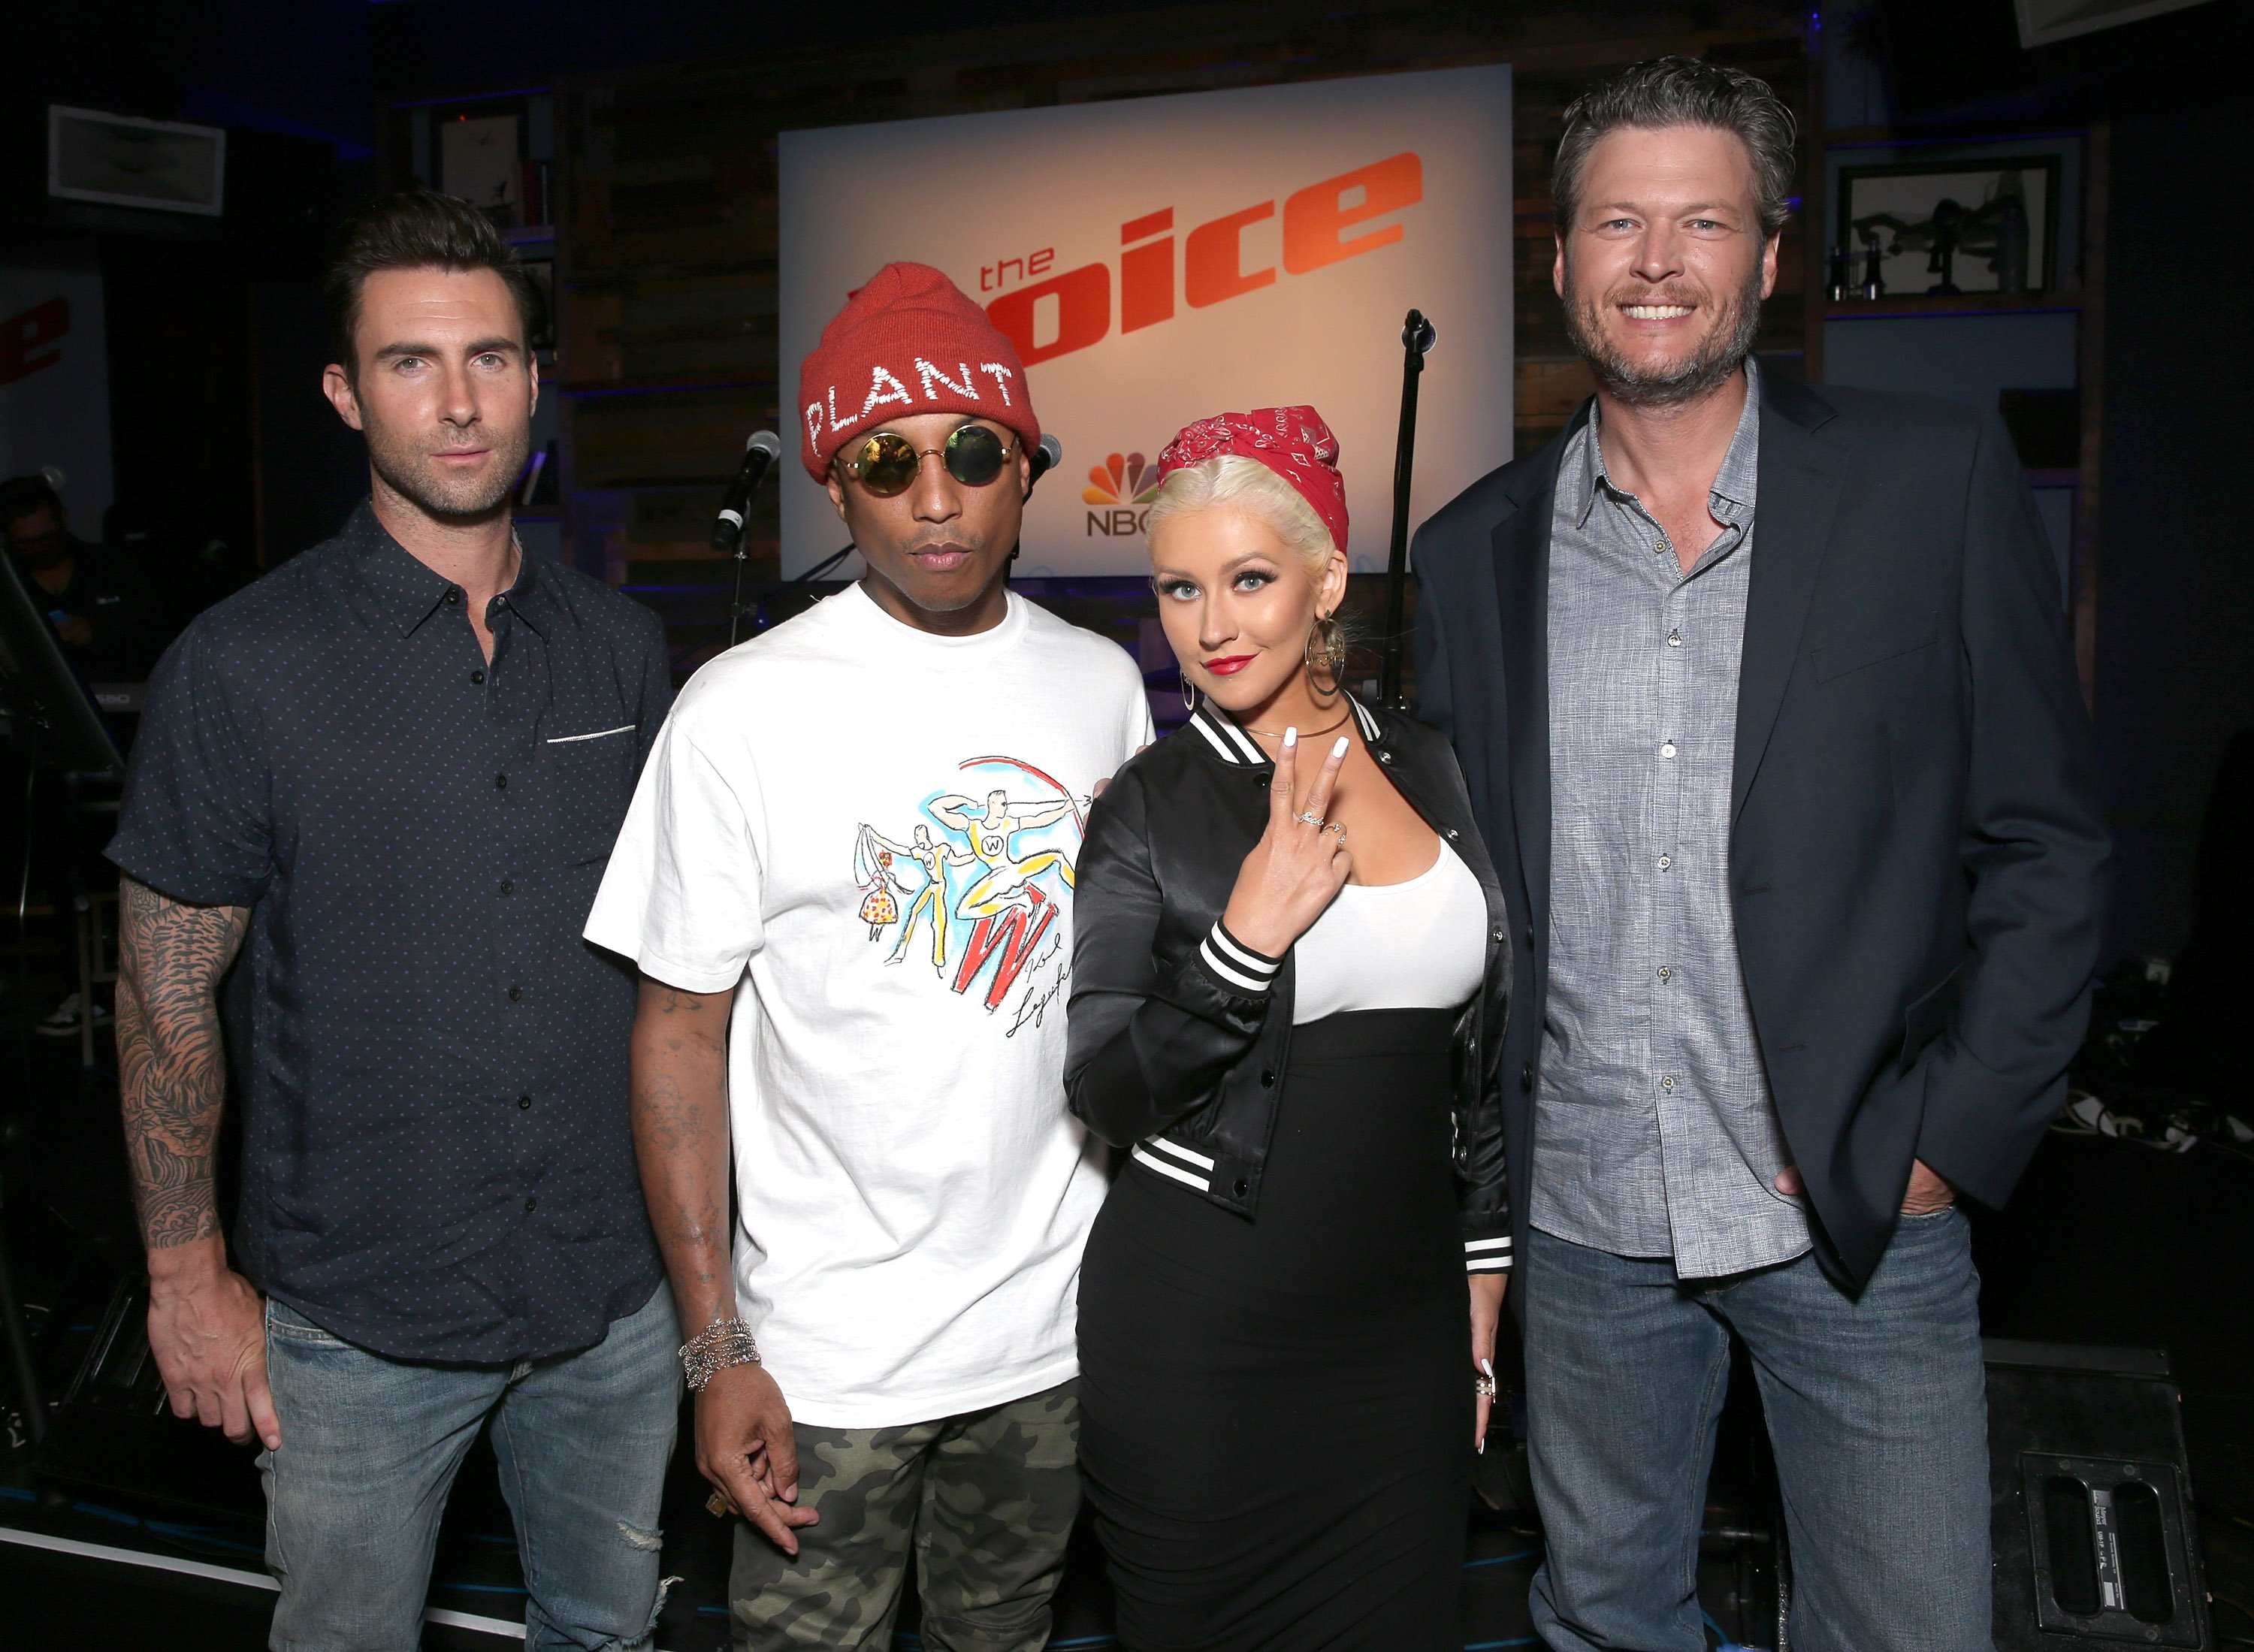 """Adam Levine, Pharrell Williams, Christina Aguilera and Blake Shelton at """"The Voice"""" Karaoke For Charity on April 21, 2016 